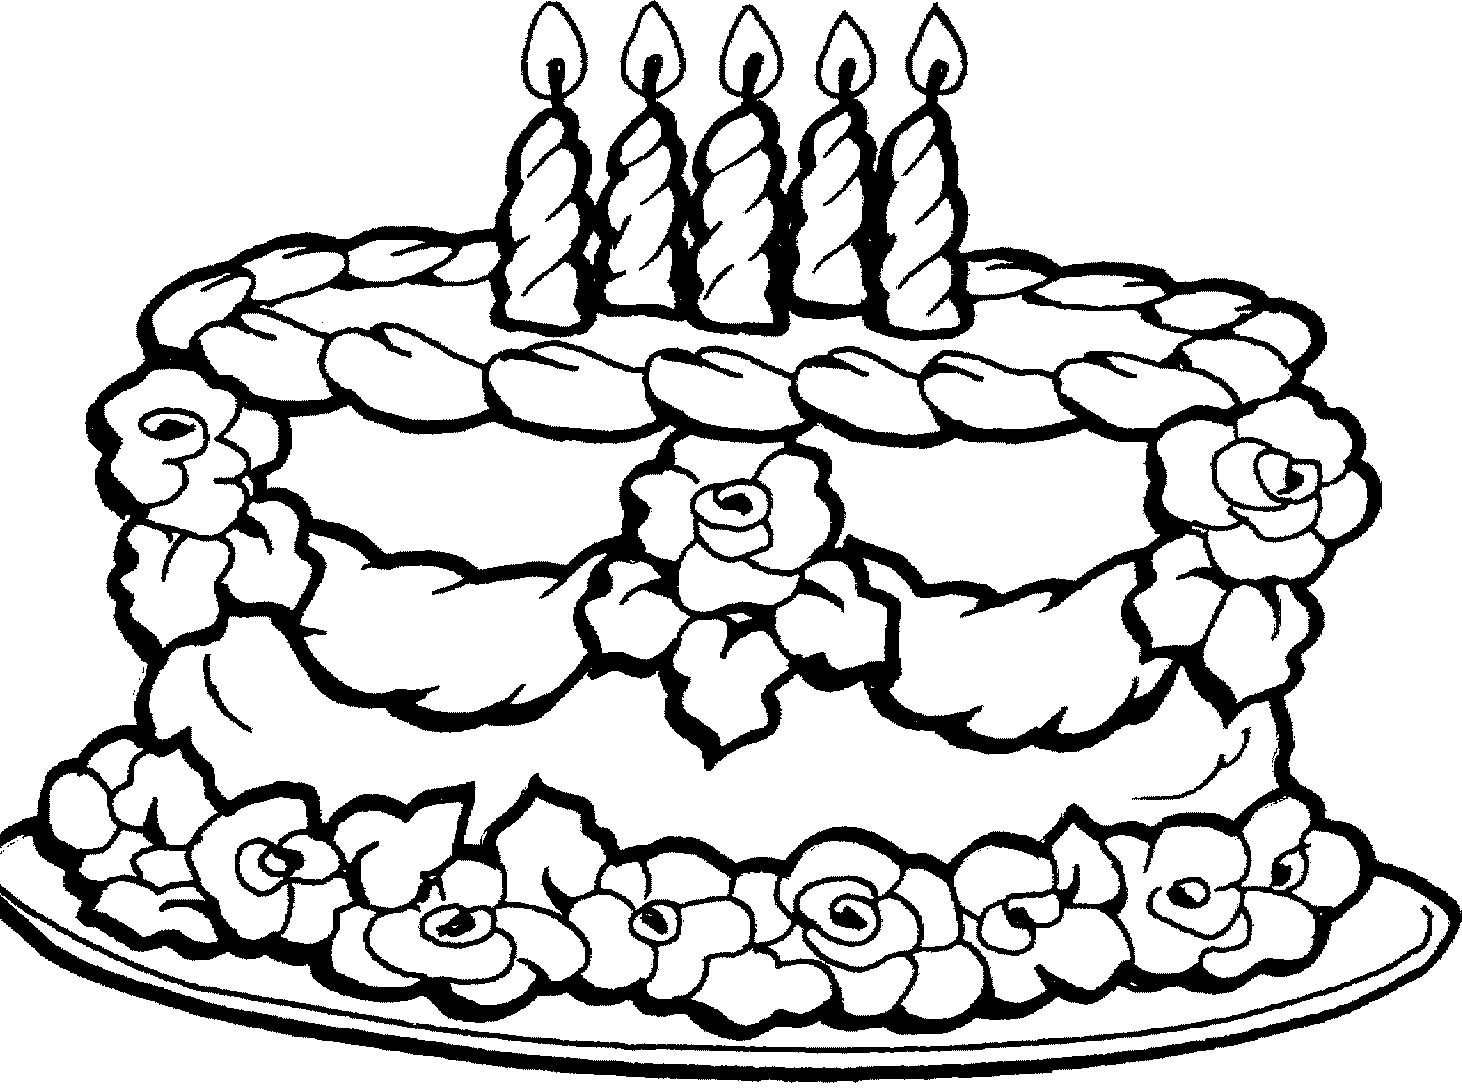 birthday cake coloring sheets free ; shopkins-birthday-cake-coloring-page-free-8